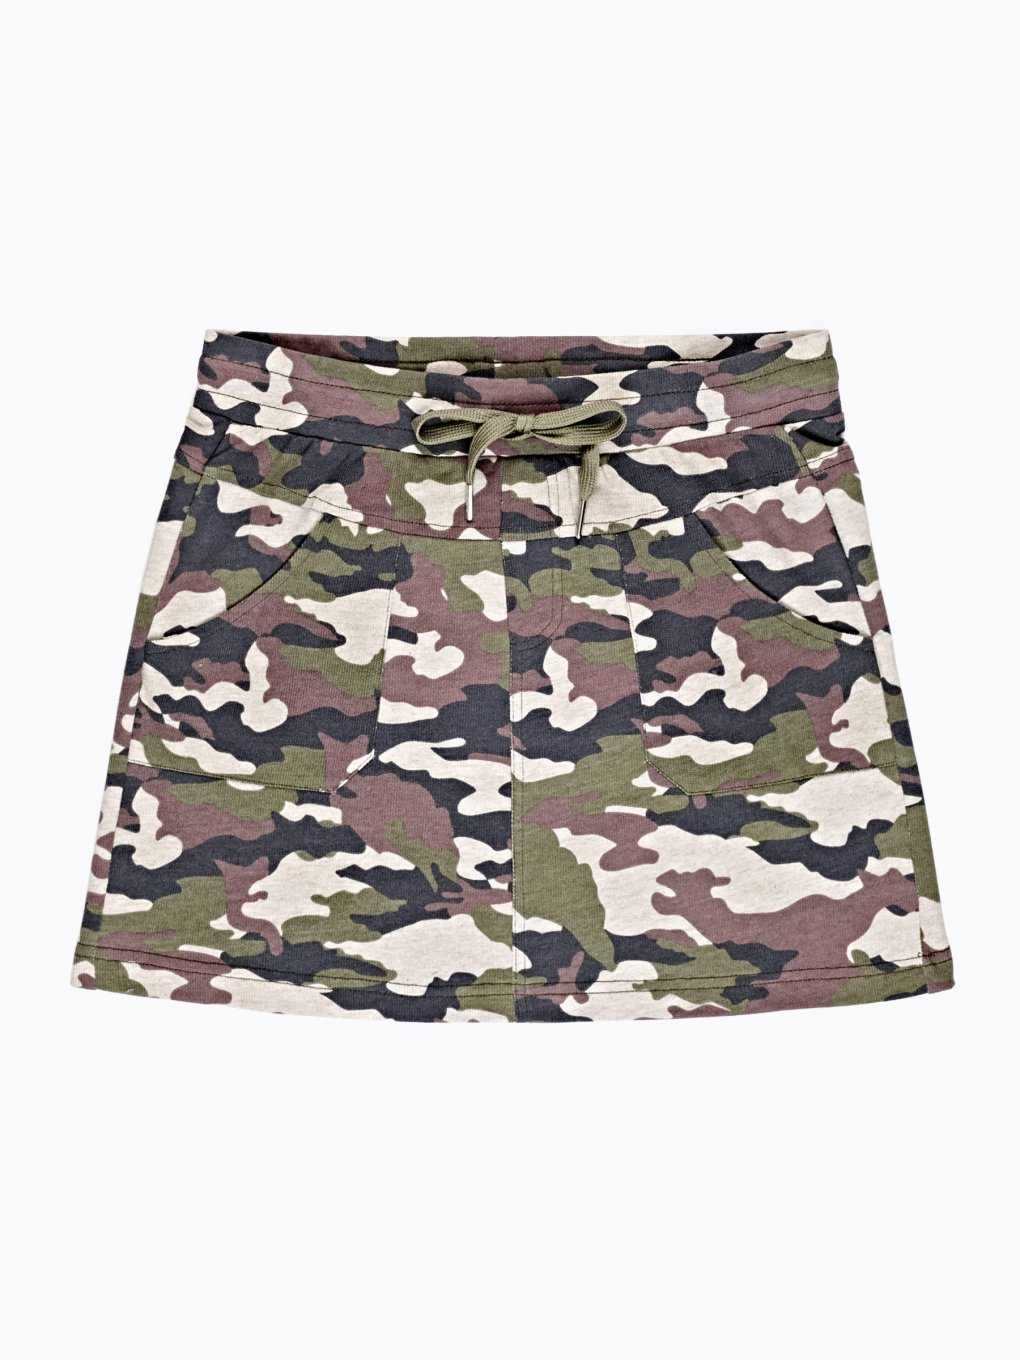 CAMO PRINT MINI SKIRT WITH POCKETS